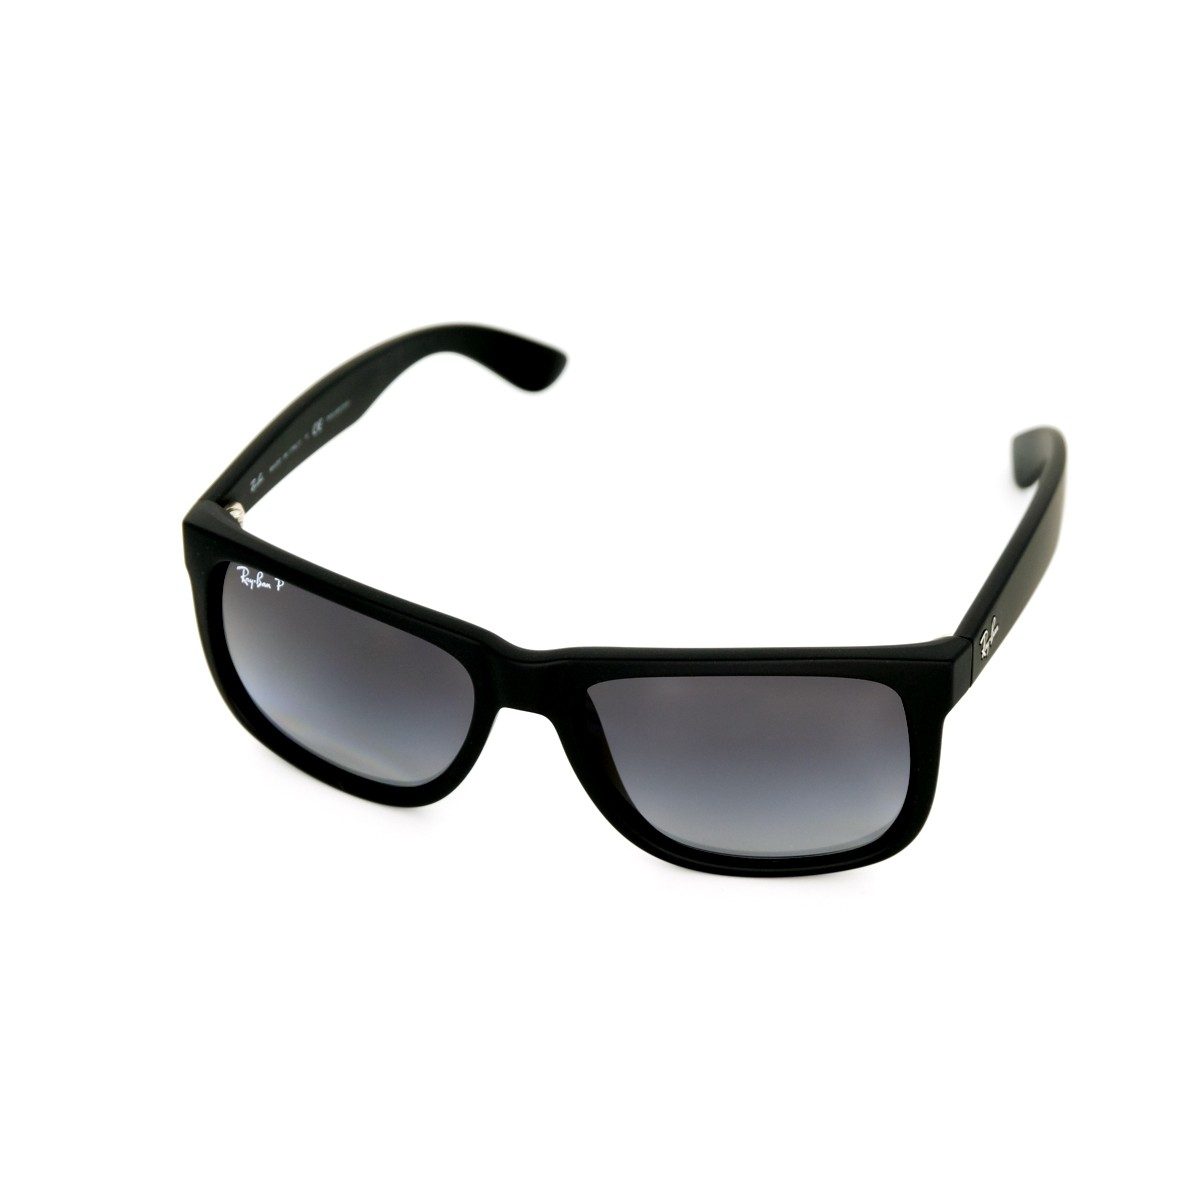 Ray Ban Justin Polarizzato RB4165 622/T3 54, 103,00 €, Occhiali Ray Ban a forma